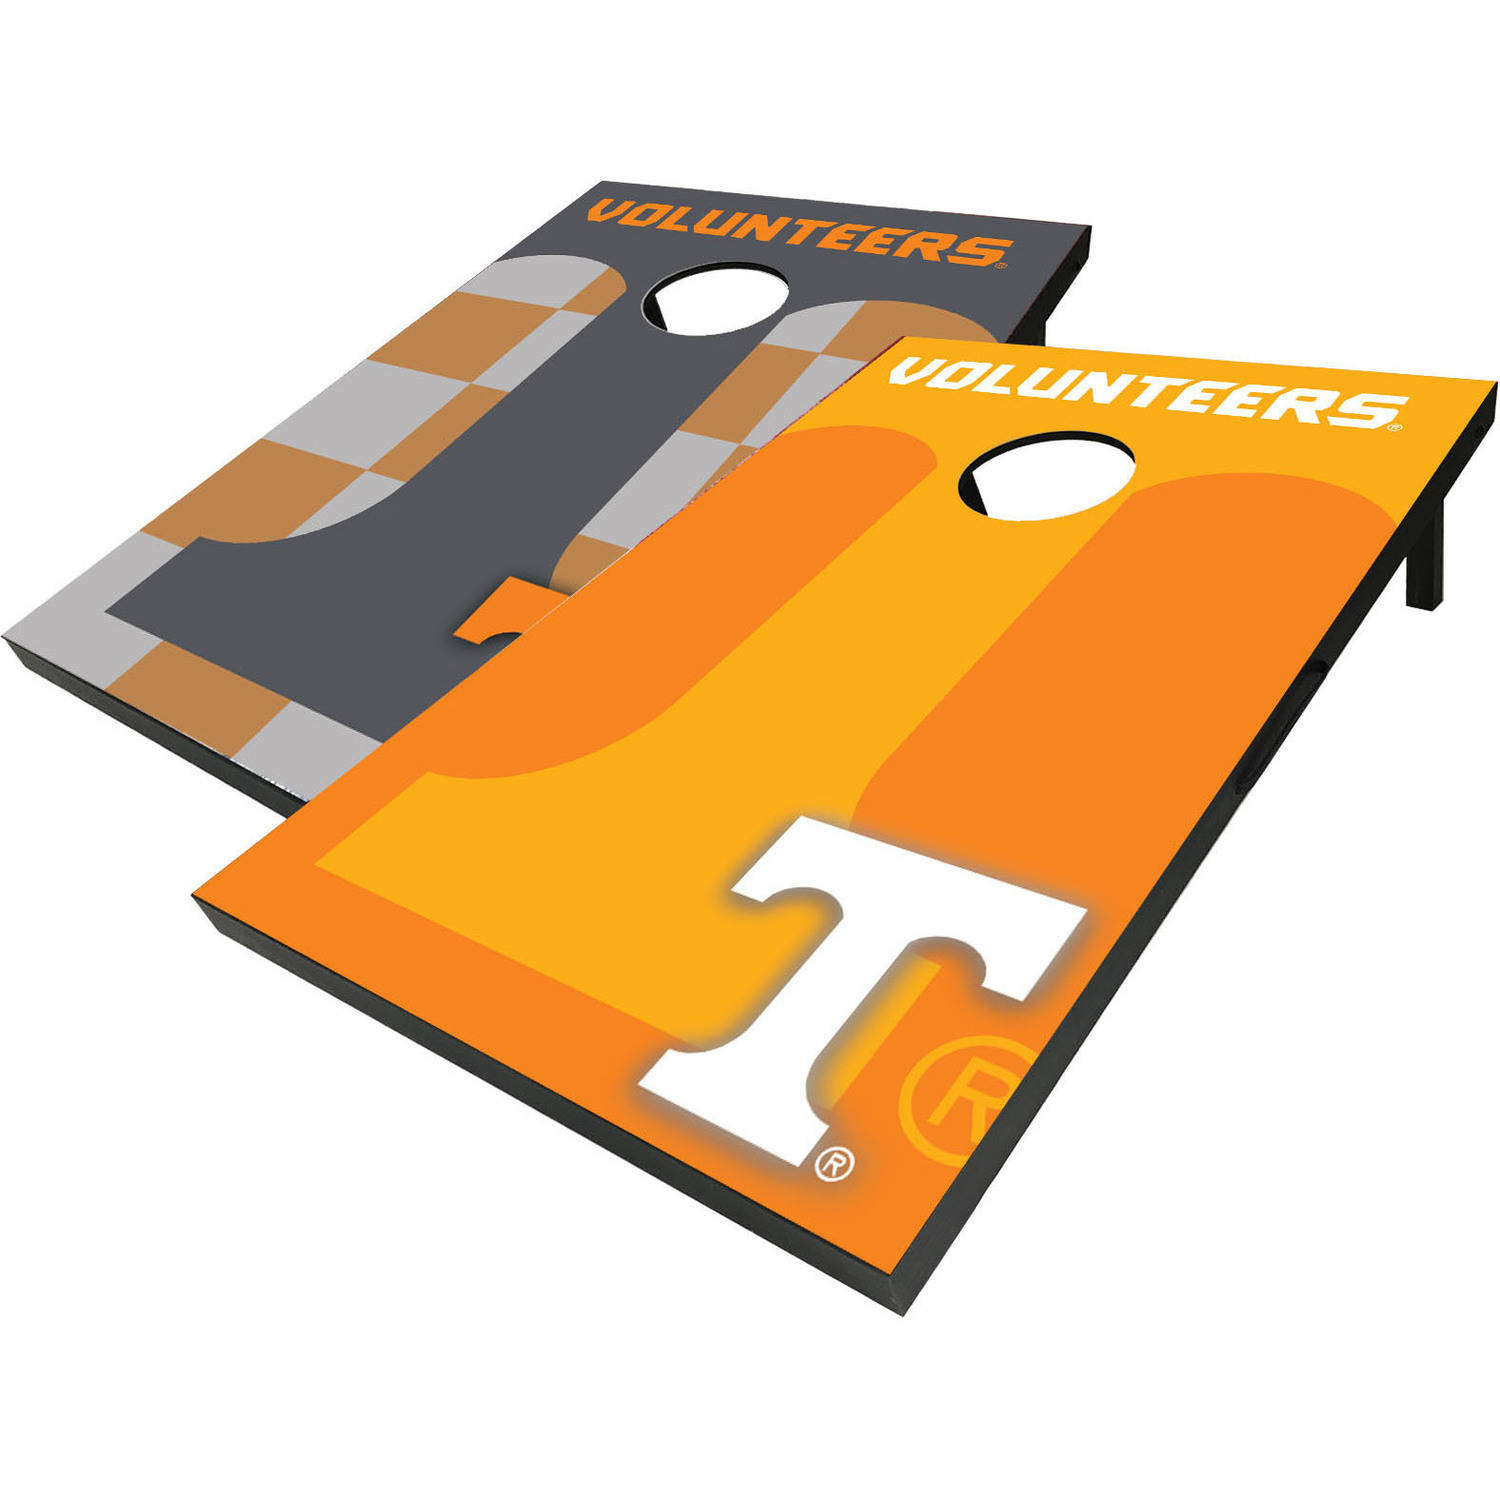 Tennessee Vols Bean Bag Toss